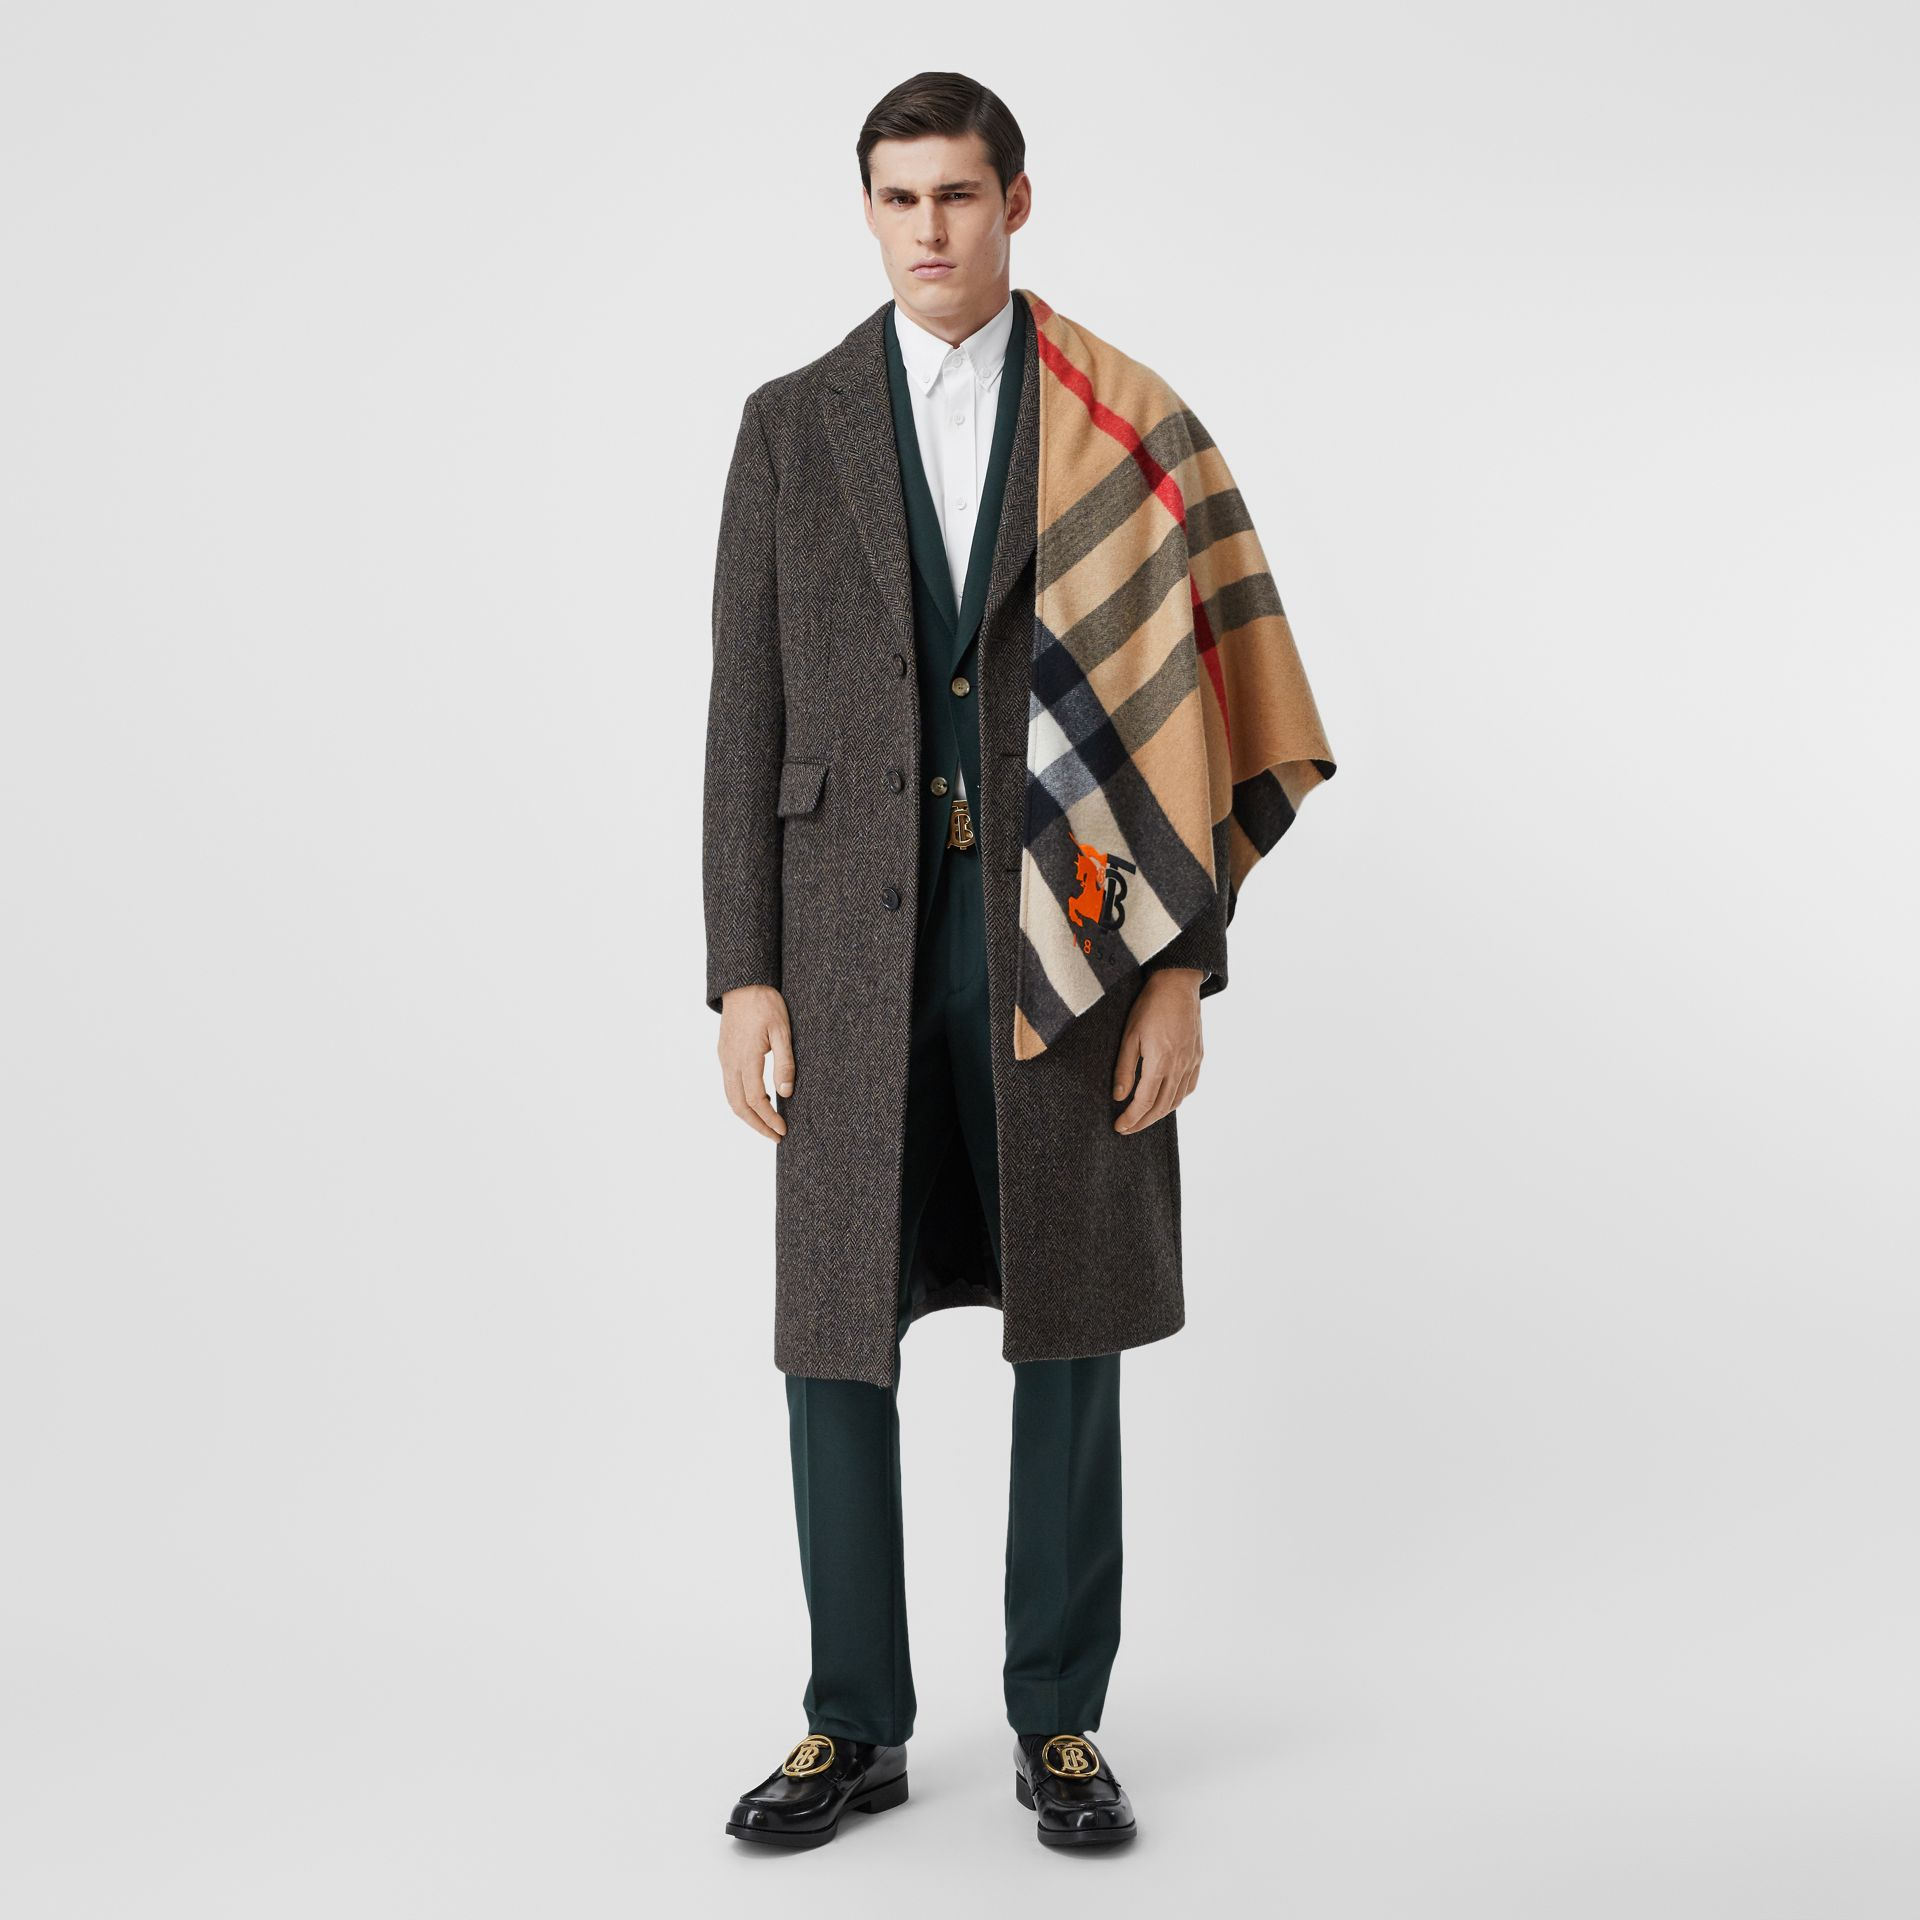 Contrast Logo Graphic Check Cashmere Bandana in Camel | Burberry - gallery image 7